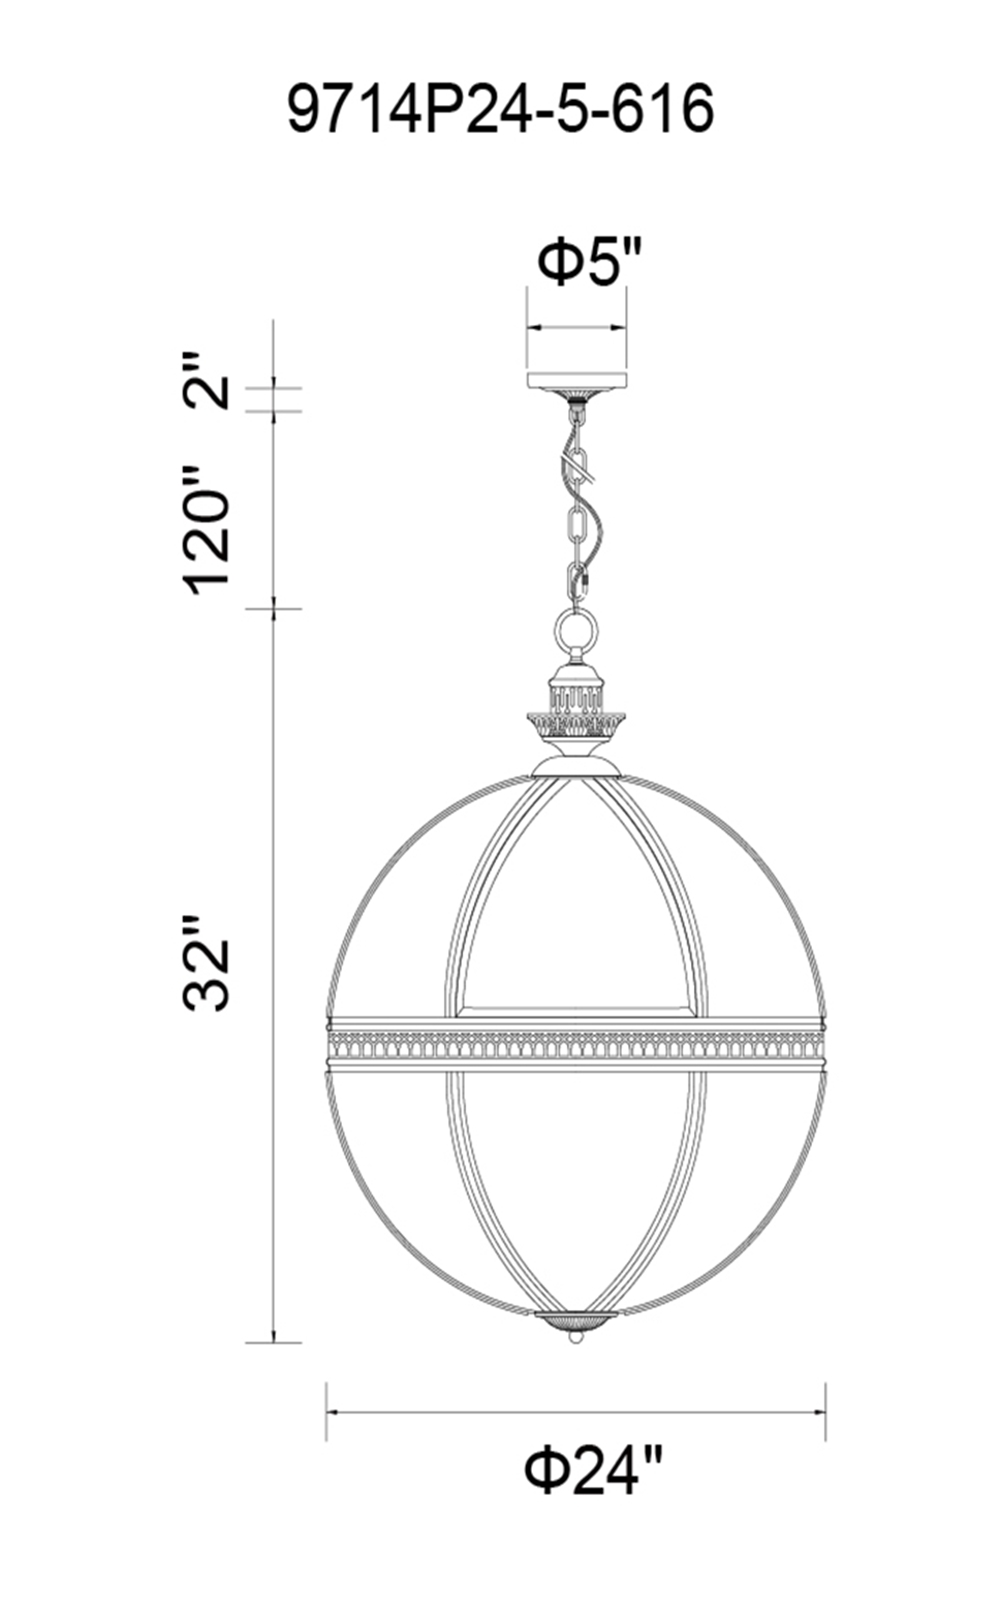 CWI Lighting Lune 5 Light Up Chandelier With Bronze Finish Model: 9714P24-5-616 Line Drawing